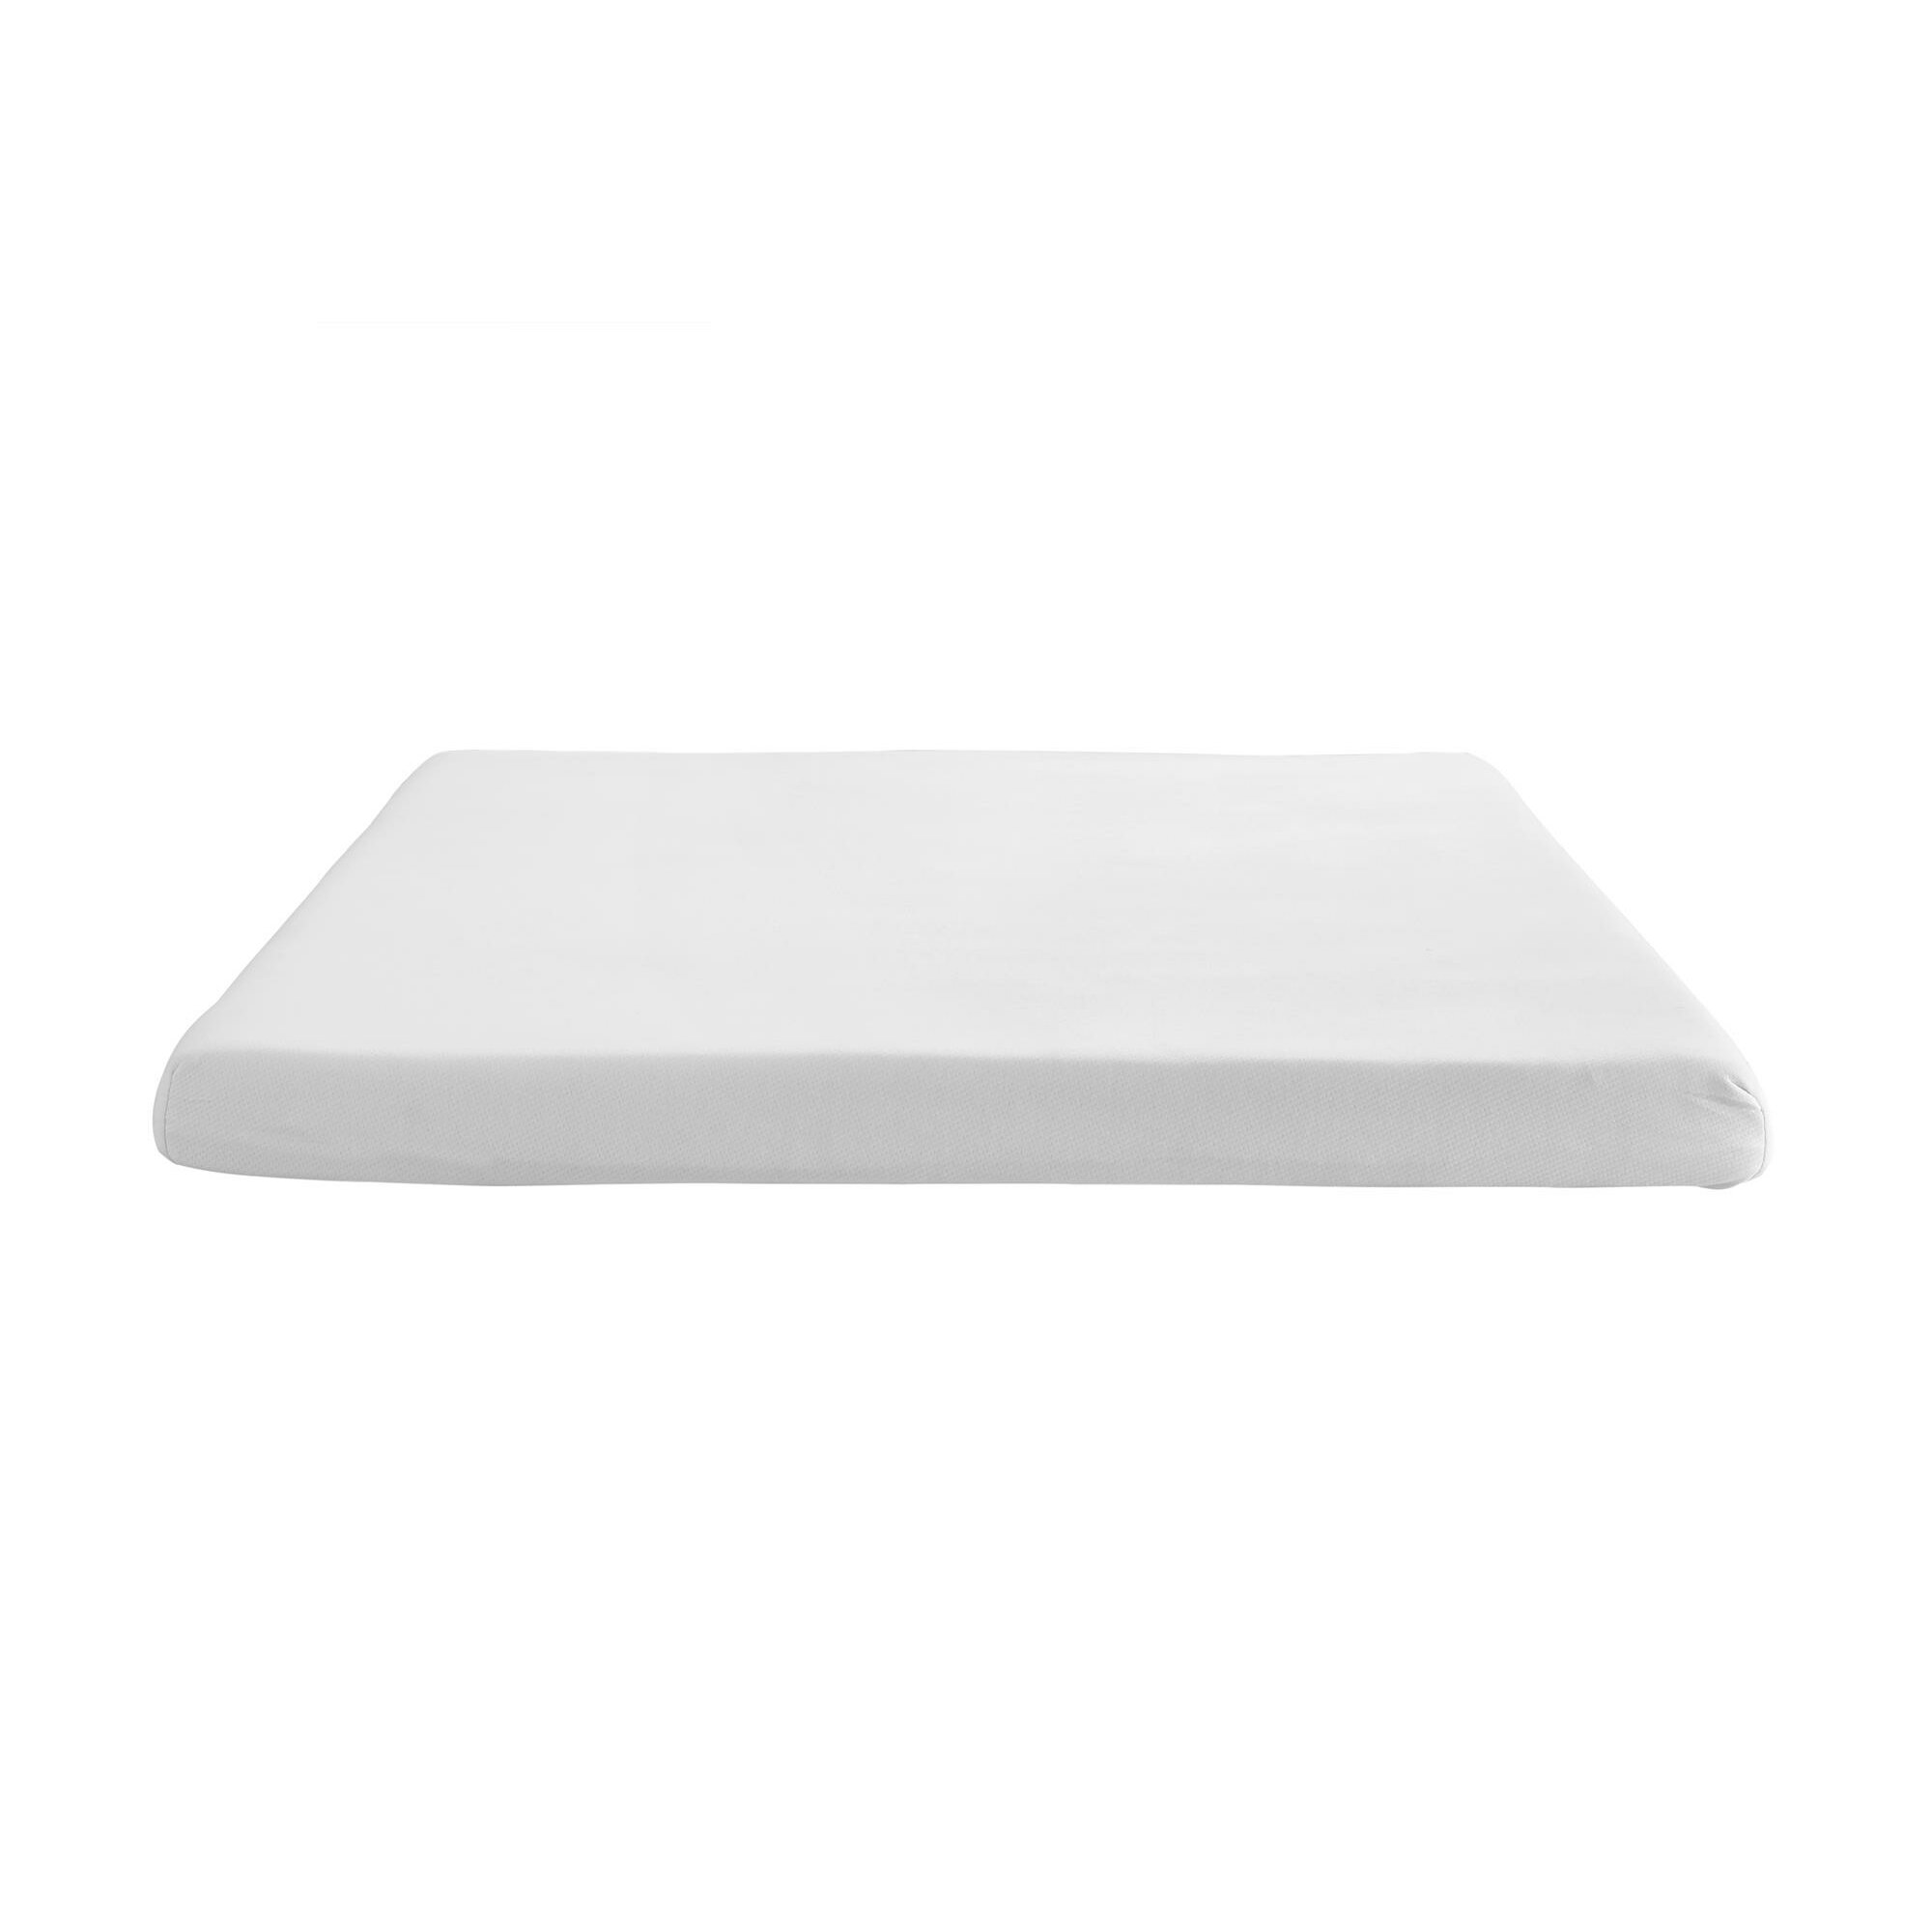 Dhp Signature Sleep Certipur Us 54 Memory Foam Mattress Reviews Wayfair